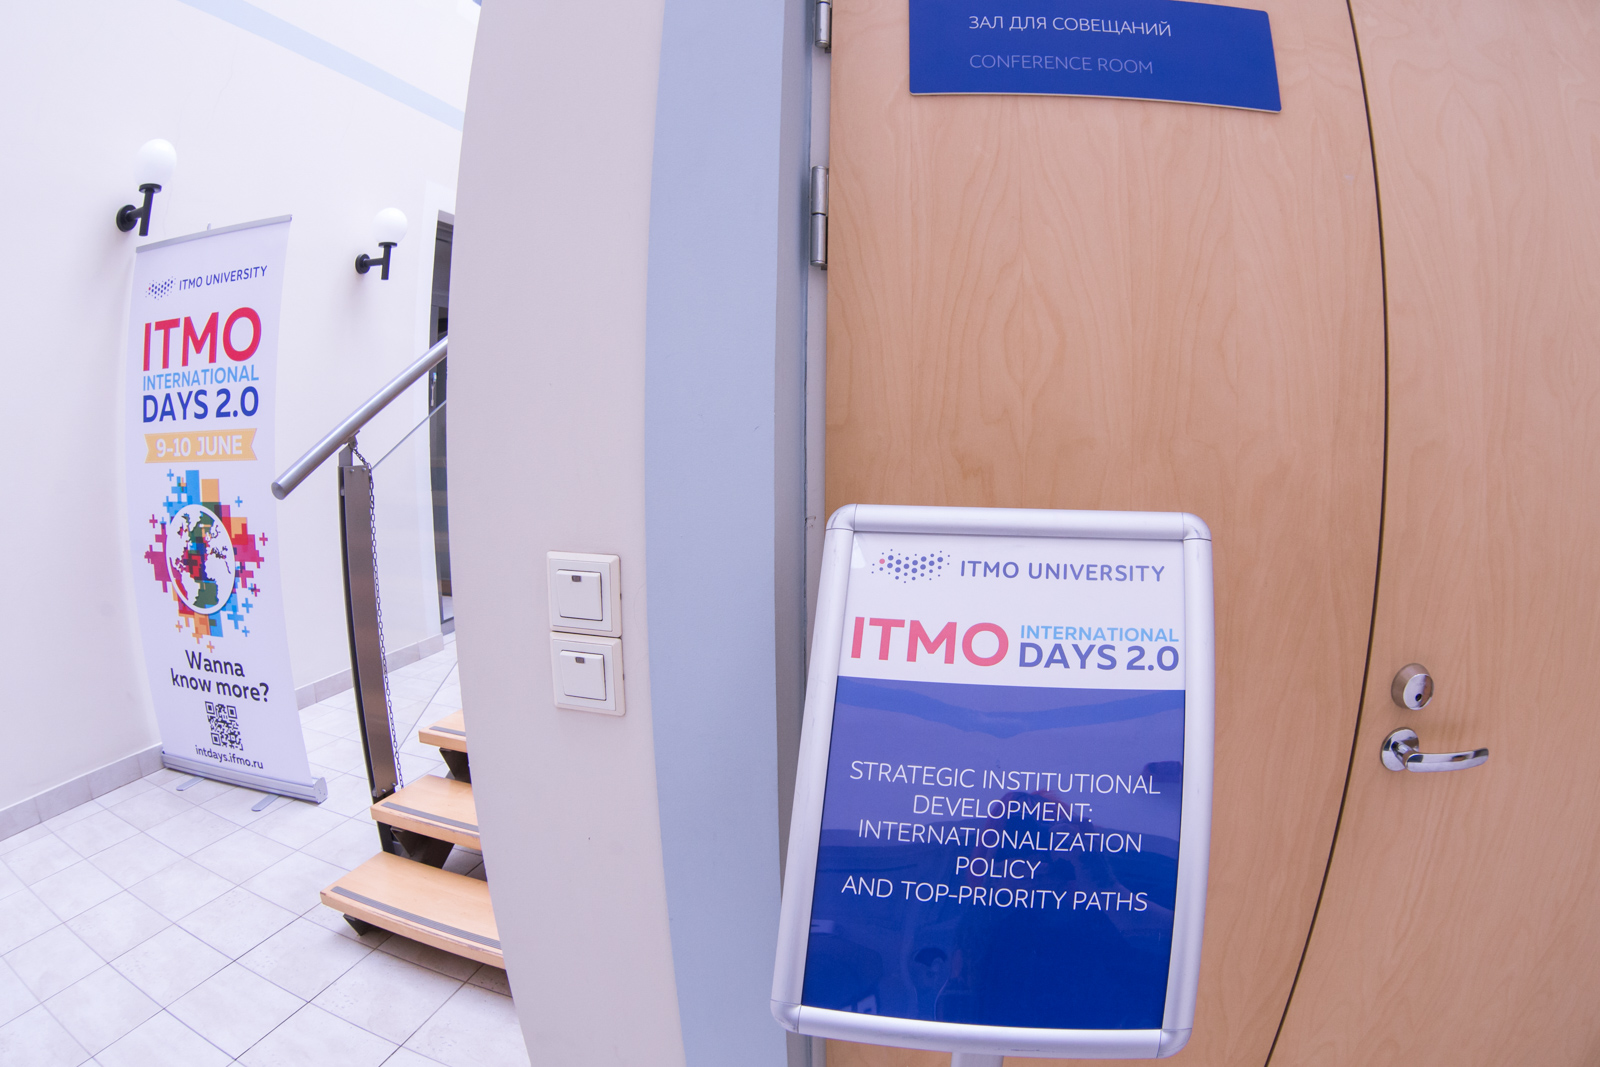 Университет ИТМО. ITMO International Days